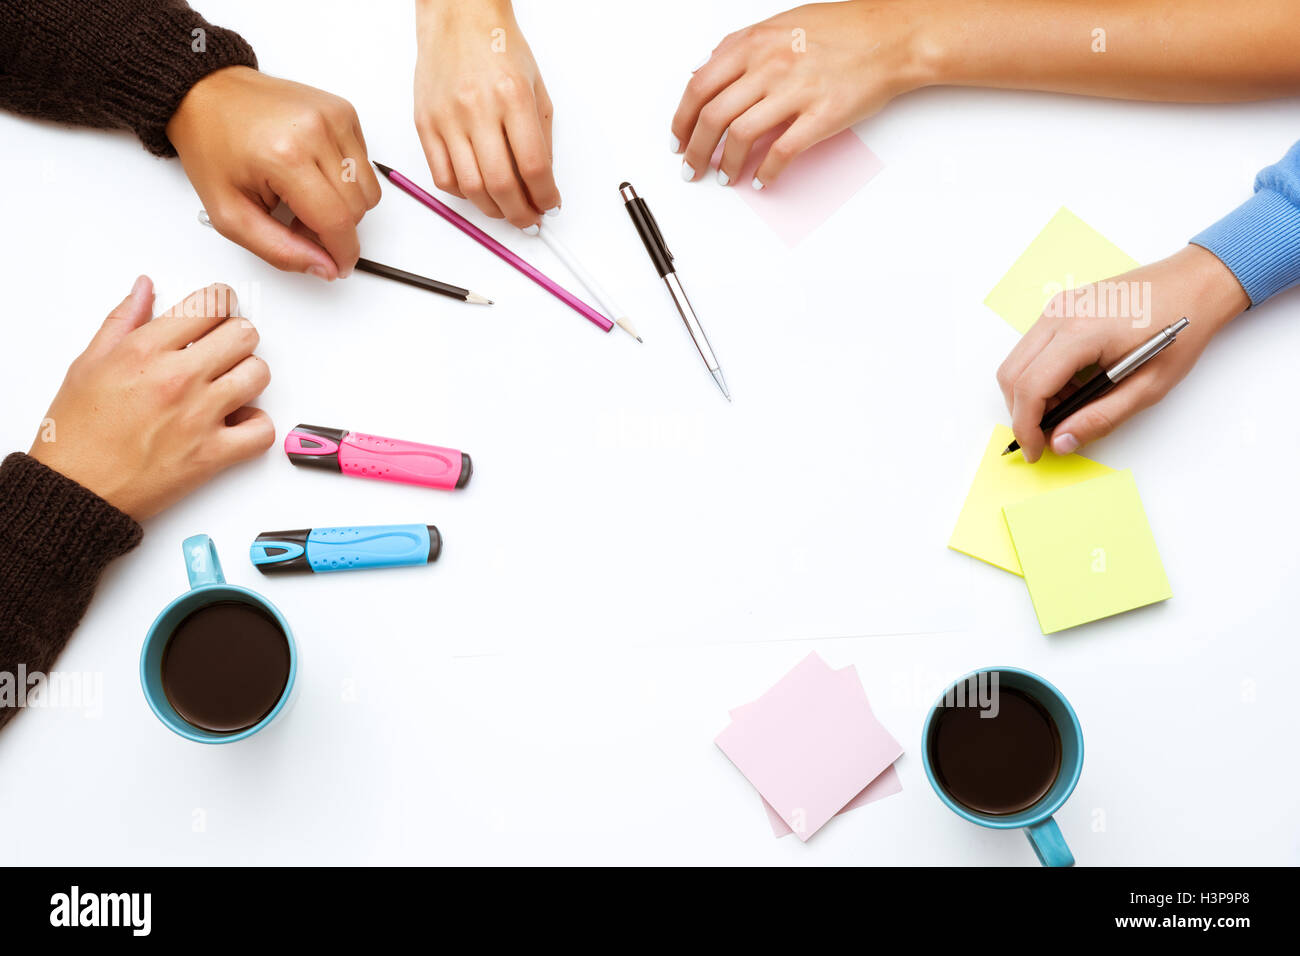 Group of people hands table work space concept - Stock Image